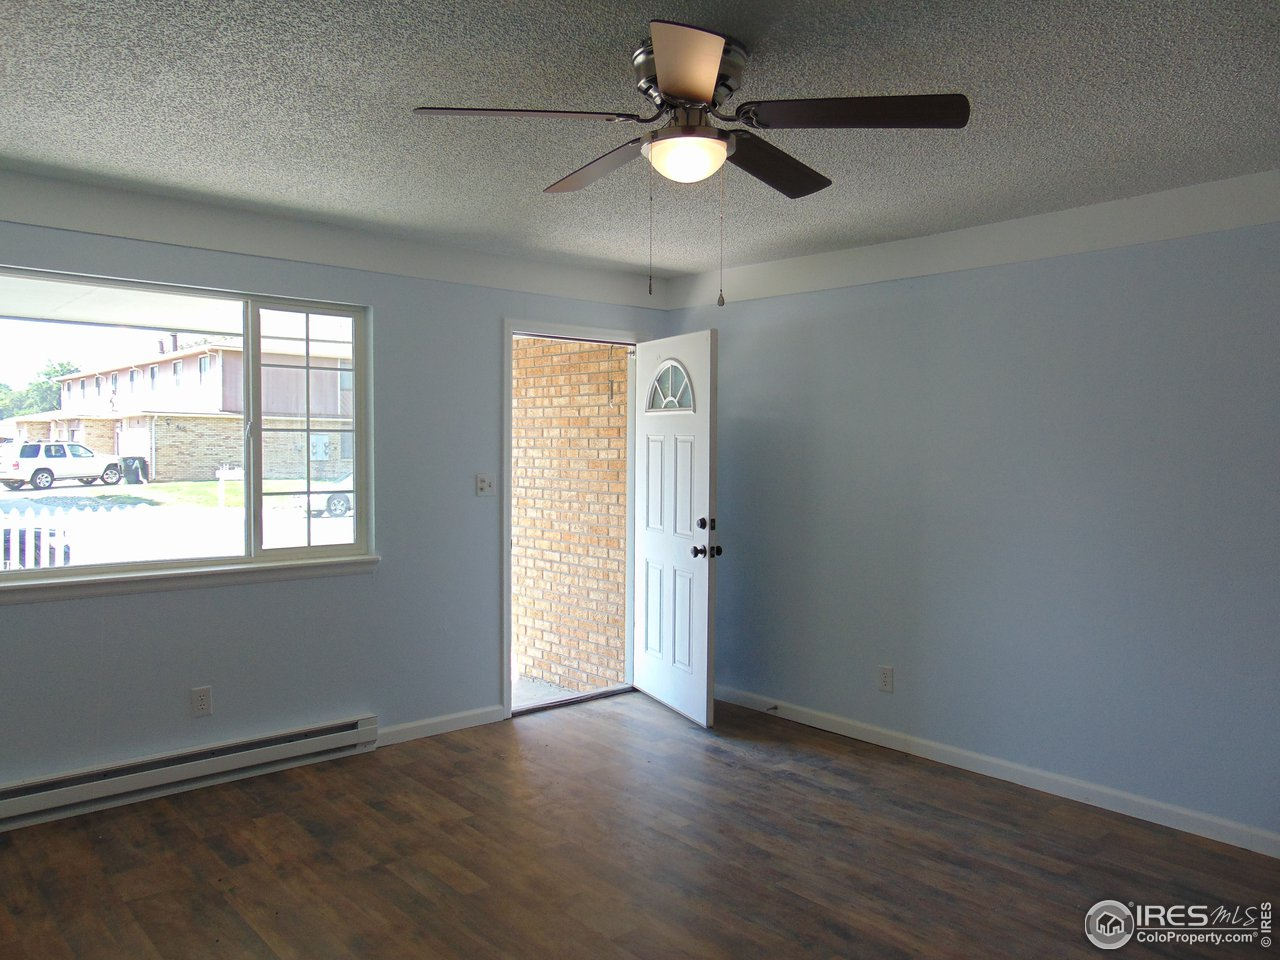 Living room with lots of light. Notice new flooring throughout.